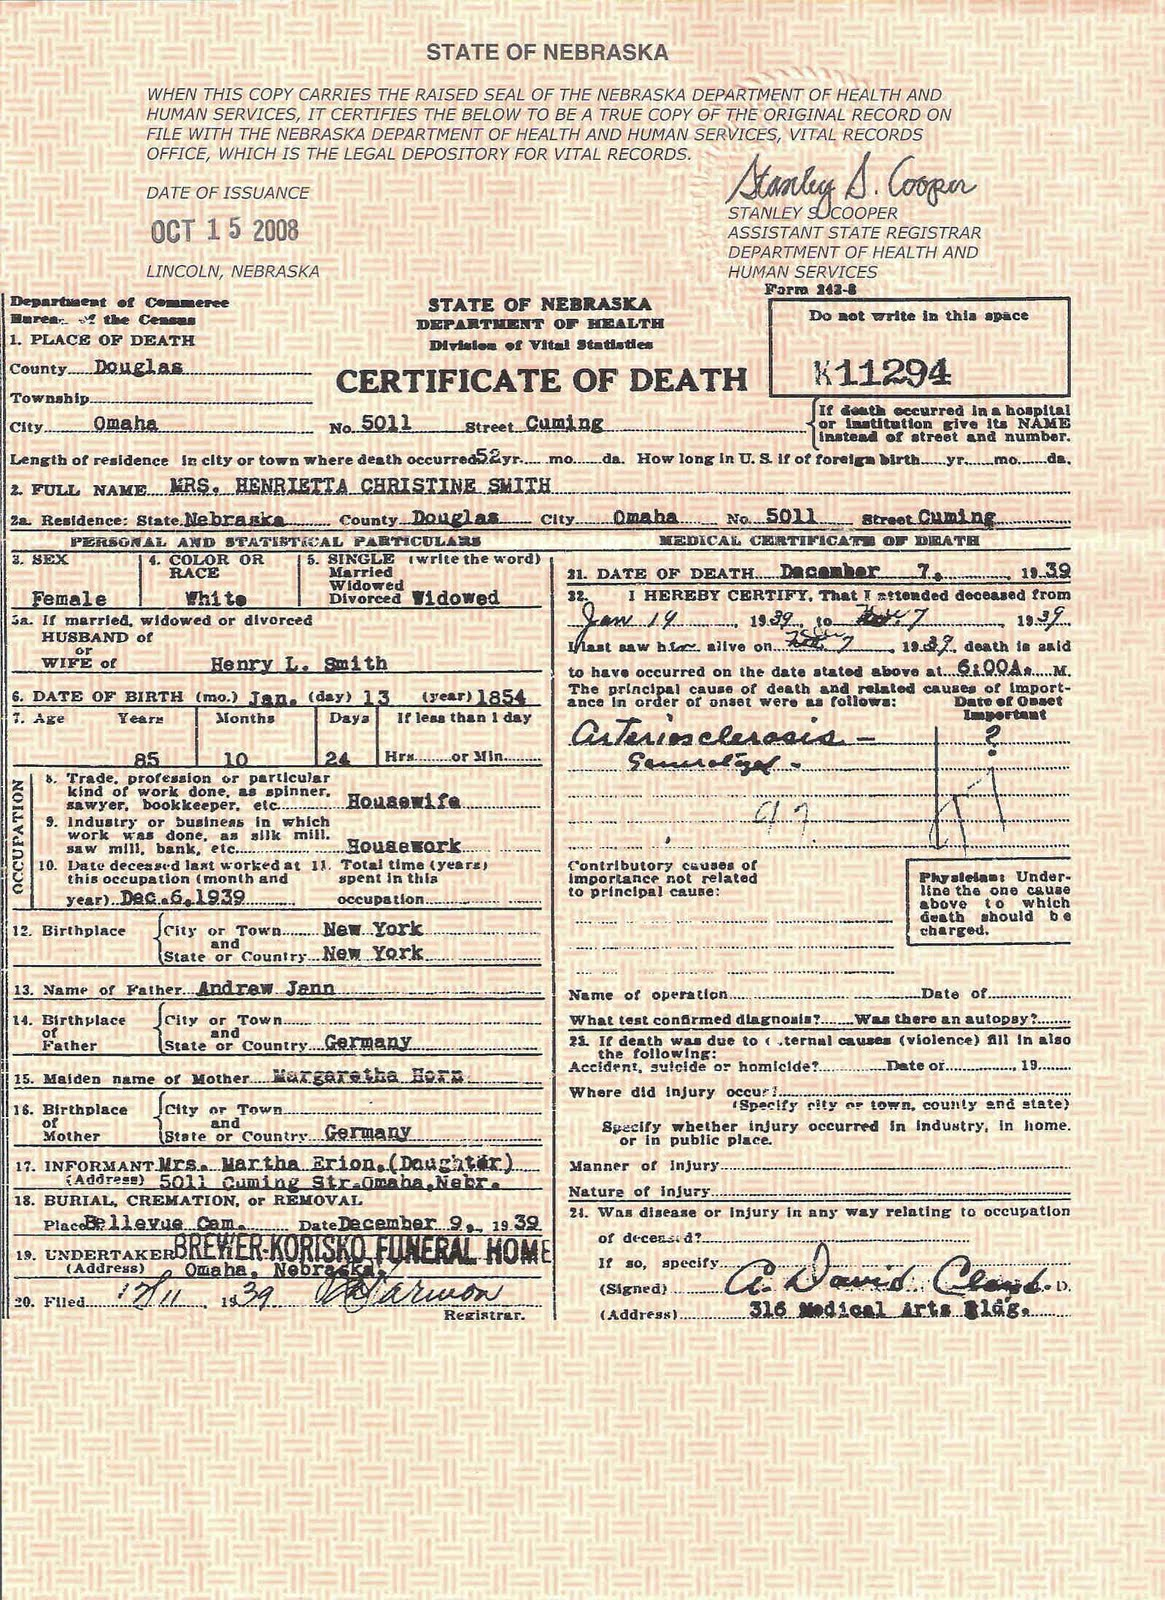 Erion Krumwied And Related Families Genealogy Death Certificate